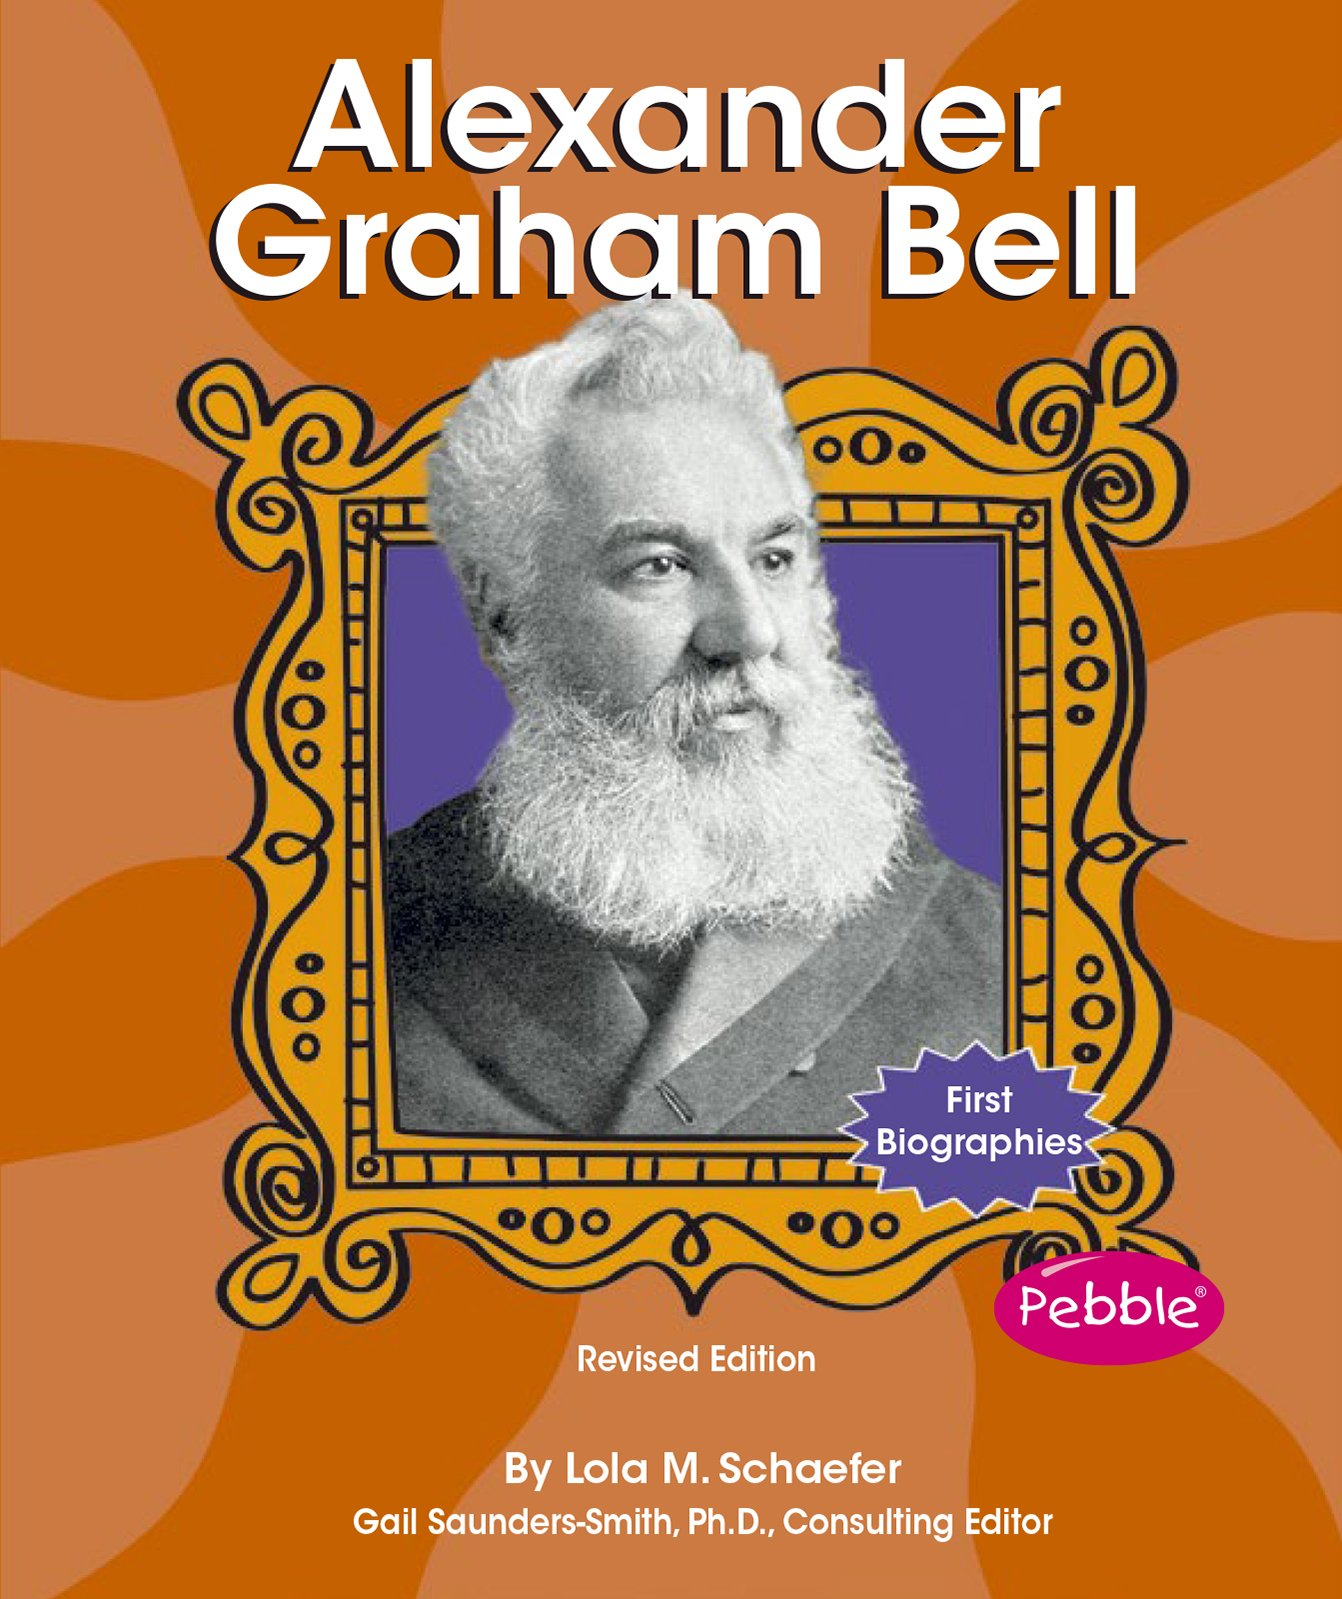 Alexander Graham Bell (First Biographies - Scientists and Inventors)